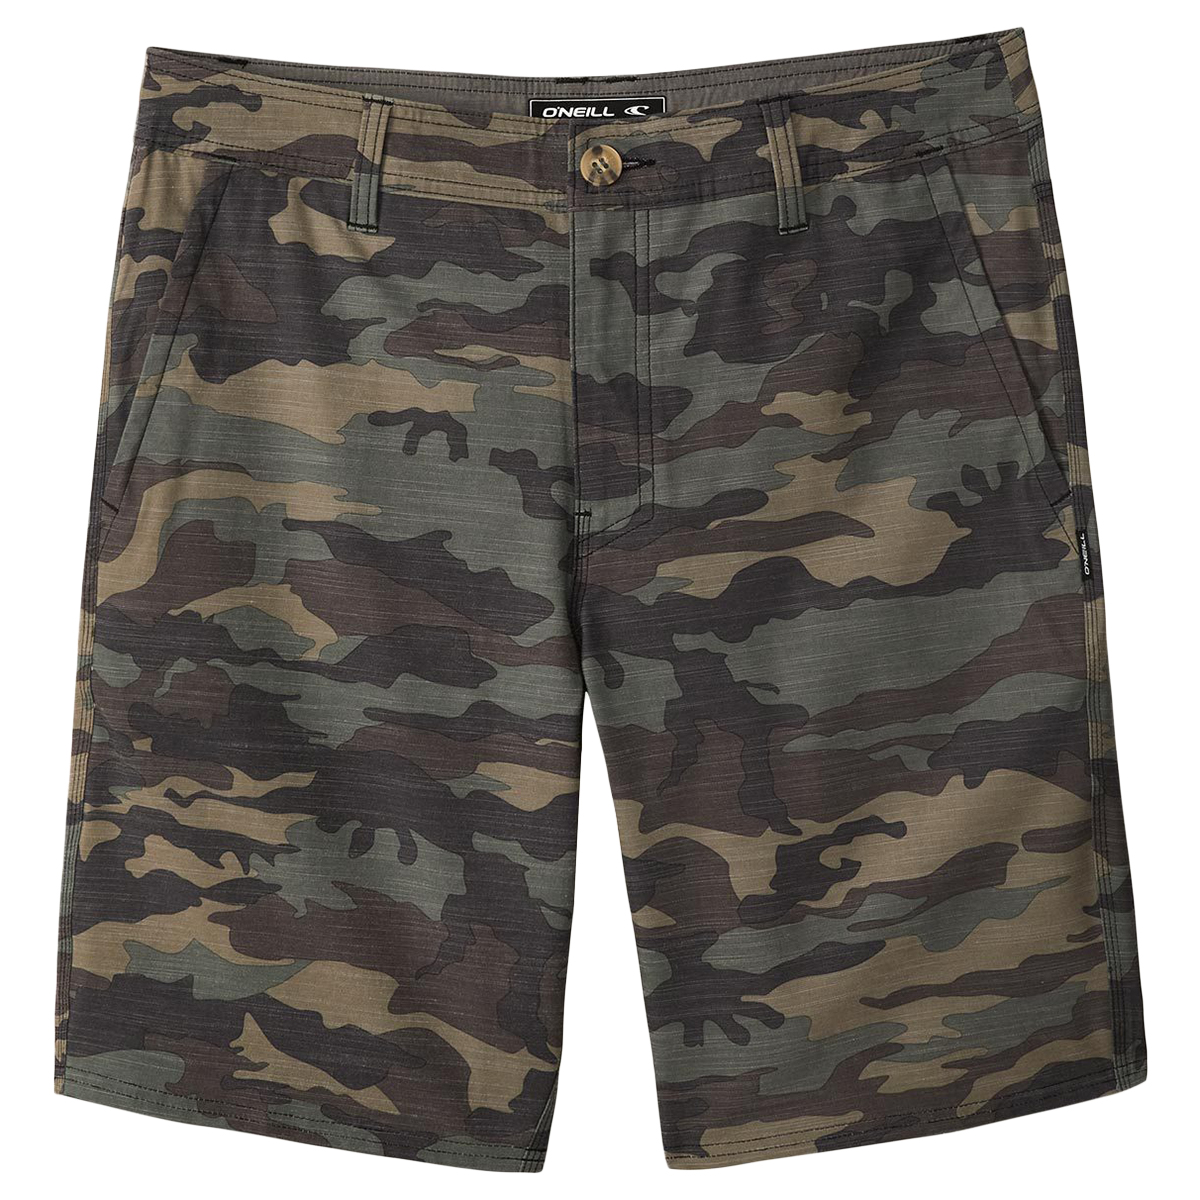 O'neill Men's Locked Slub Shorts - Green, 34